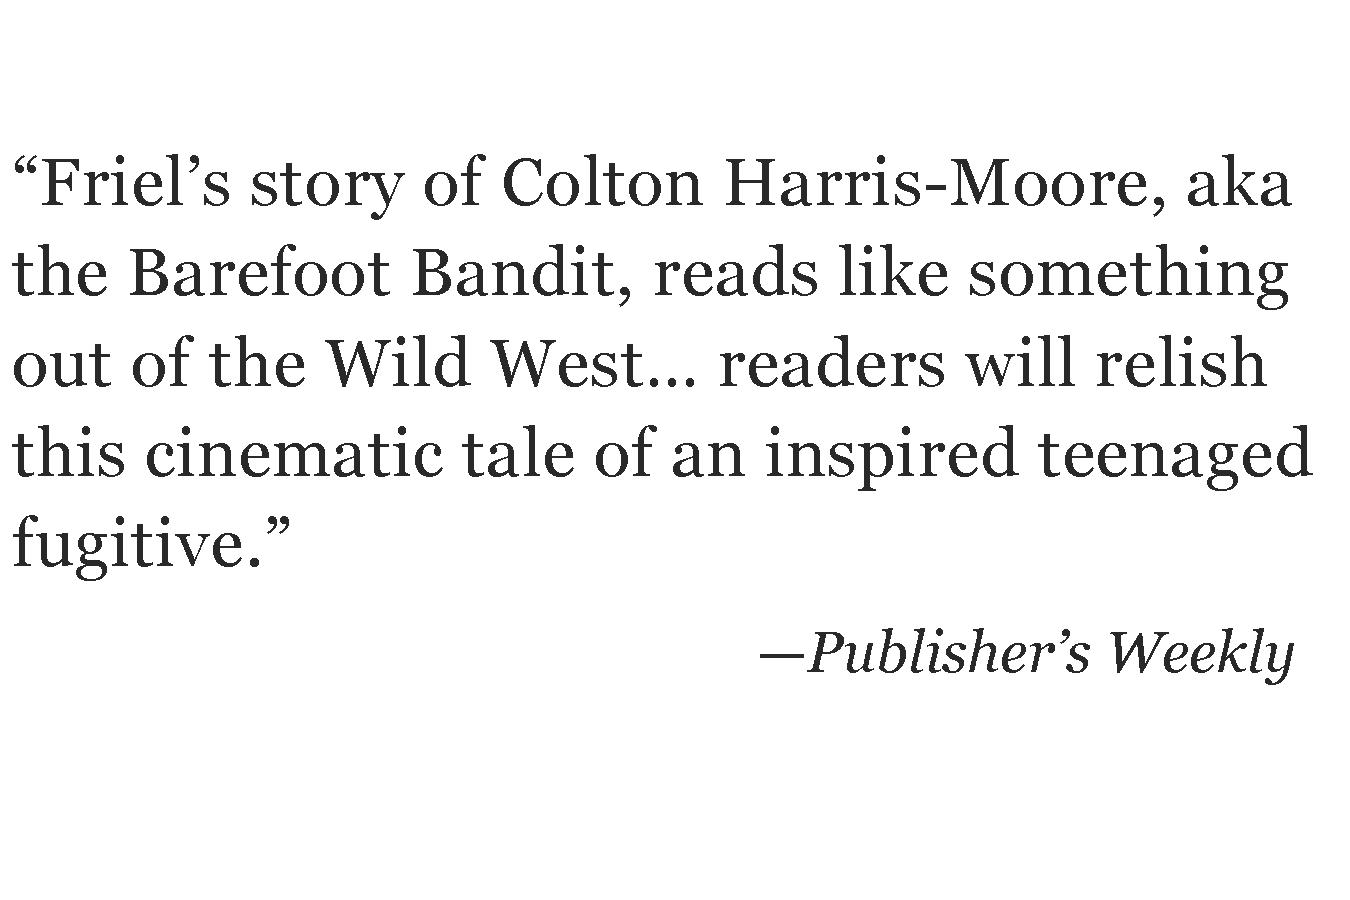 publishers-weekly-quote